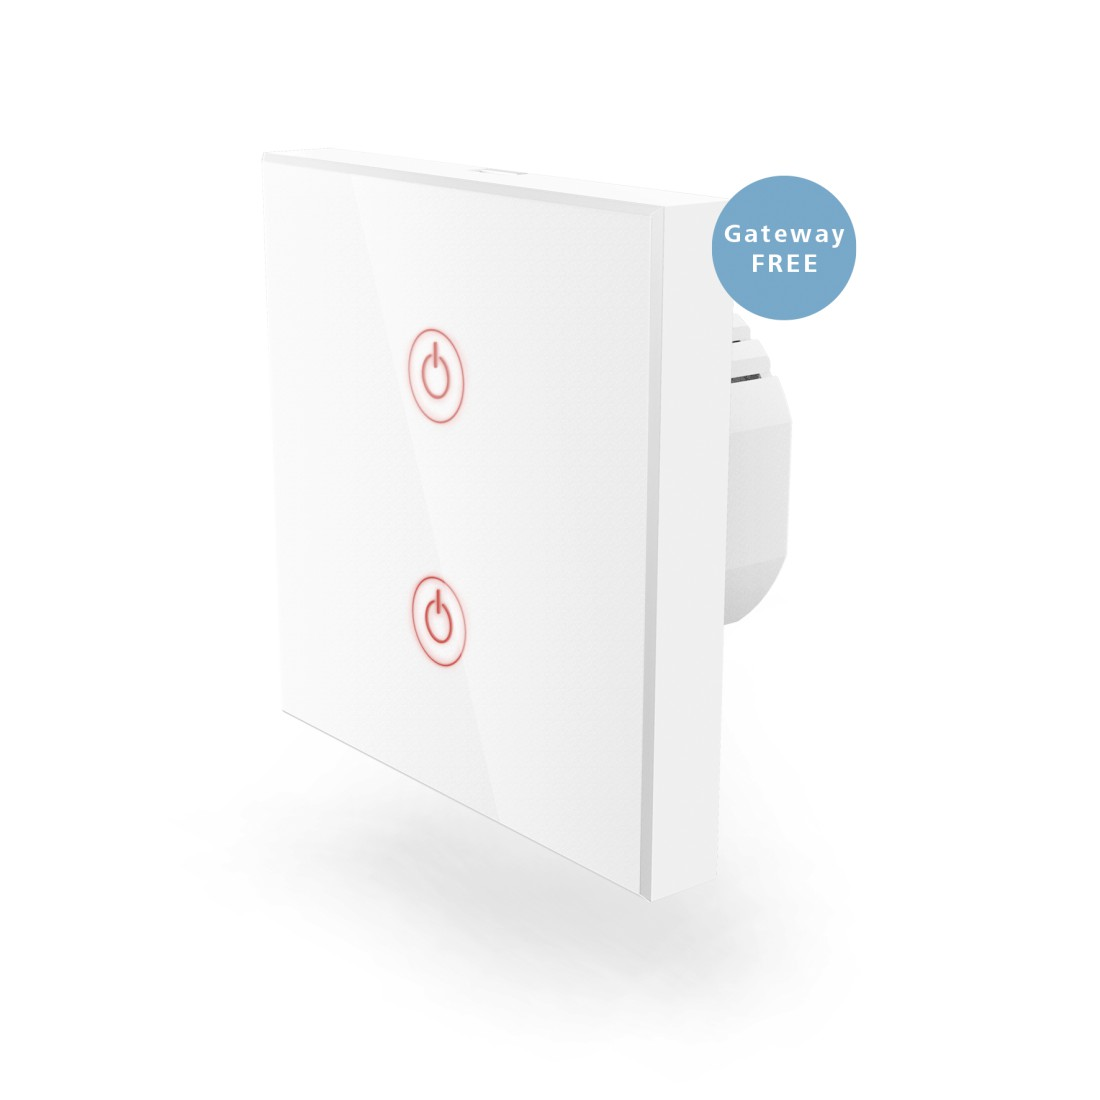 uax Printable Image Logo - Hama, WiFi Touch Wall Switch, Flush-mounted, white